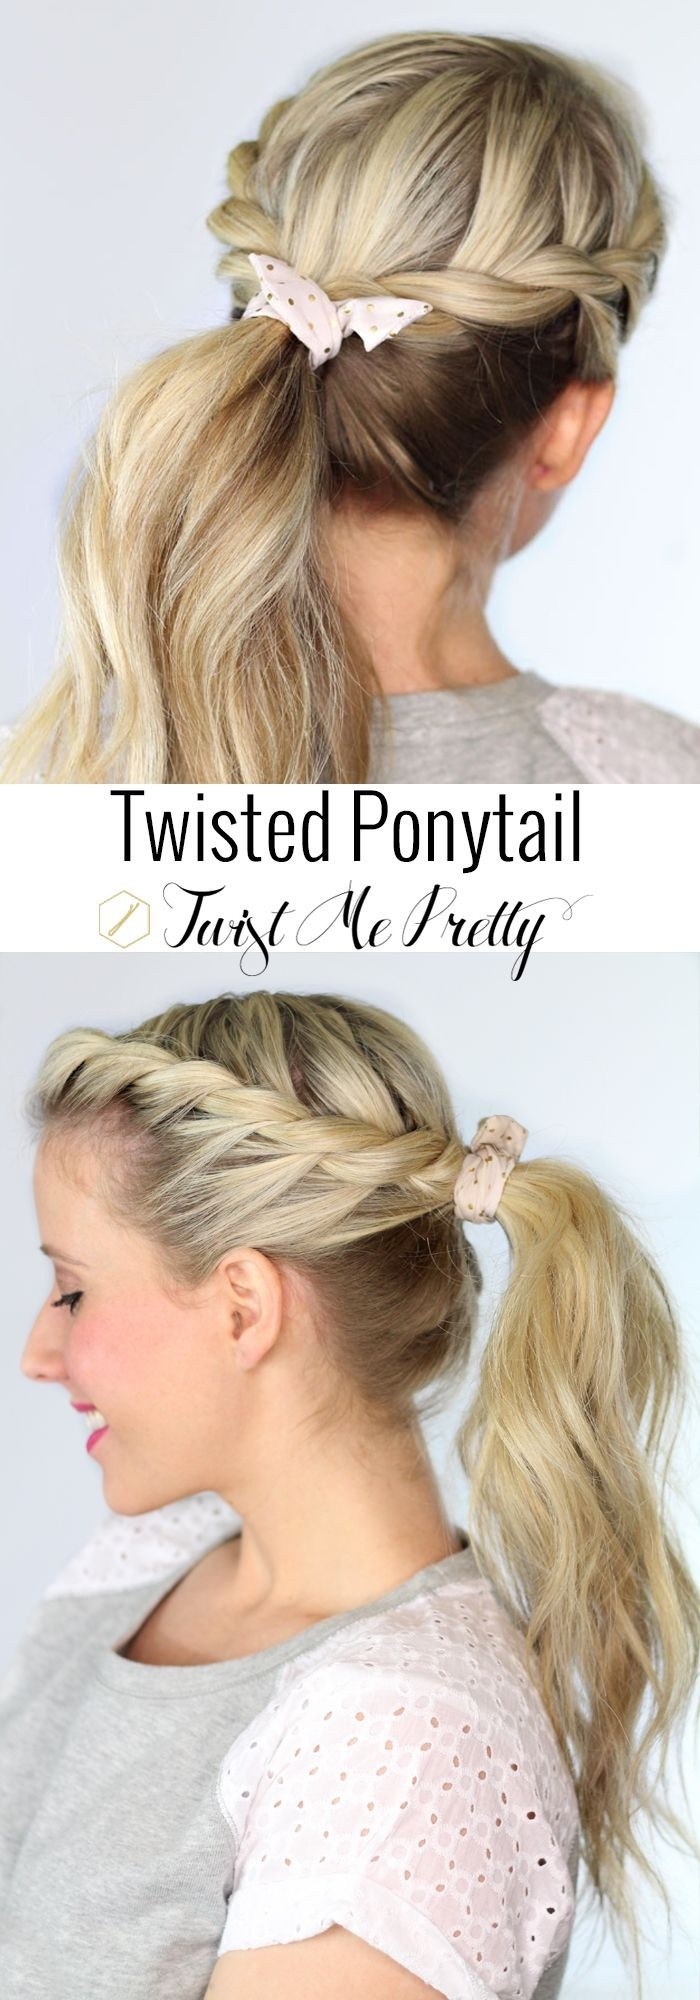 best-pontail-hairstyles-for-medium-hair-2015 (13)